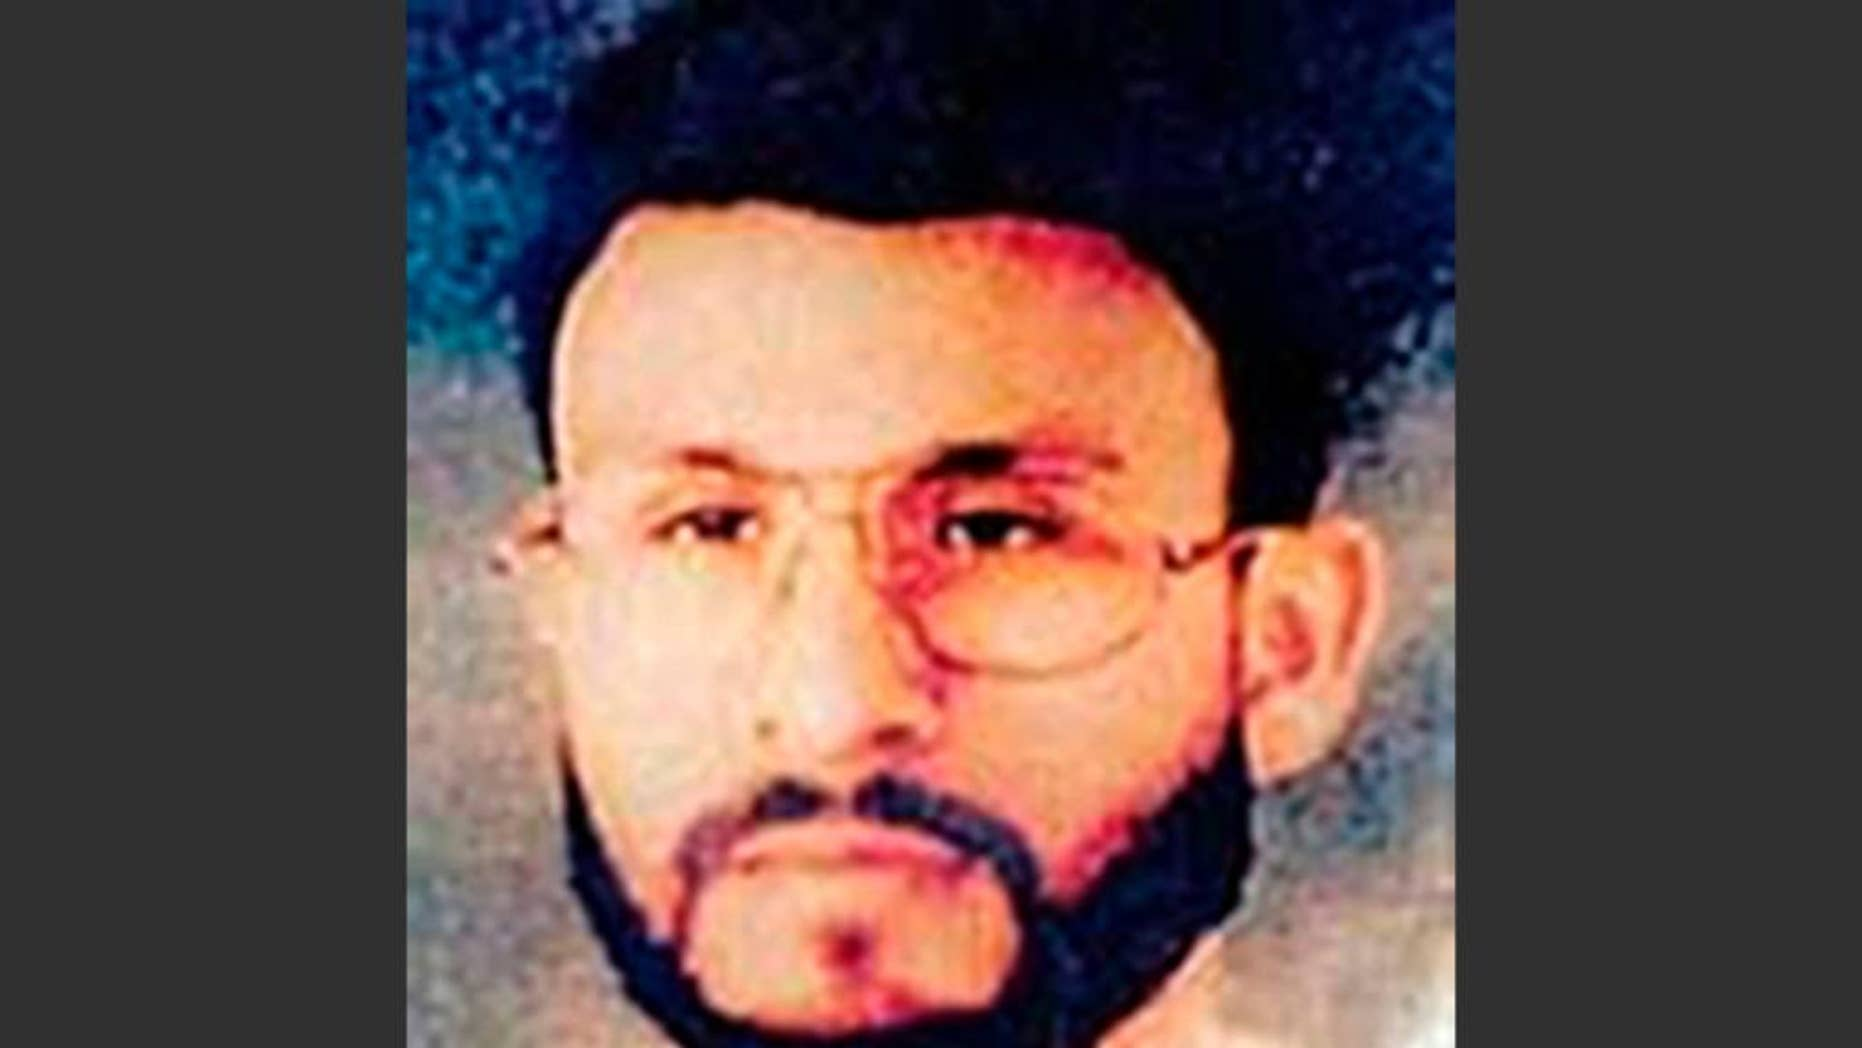 FILE - This undated file photo provided by U.S. Central Command shows Abu Zubaydah at an unknown location. Zubaydah was the CIA's guinea pig. He was the first high-profile al Qaida terror suspect captured after the Sept. 11 attacks and the first to vanish into the spy agency's secret prisons, the first subjected to grinding white noise and sleep deprivation tactics and the first to gasp under the simulated drowning of waterboarding. Zubaydah's stark ordeal became the CIA's blueprint for the brutal treatment of terror suspects, according to the Senate Intelligence Committee's report released Tuesday. (AP Photo/U.S. Central Command, File)